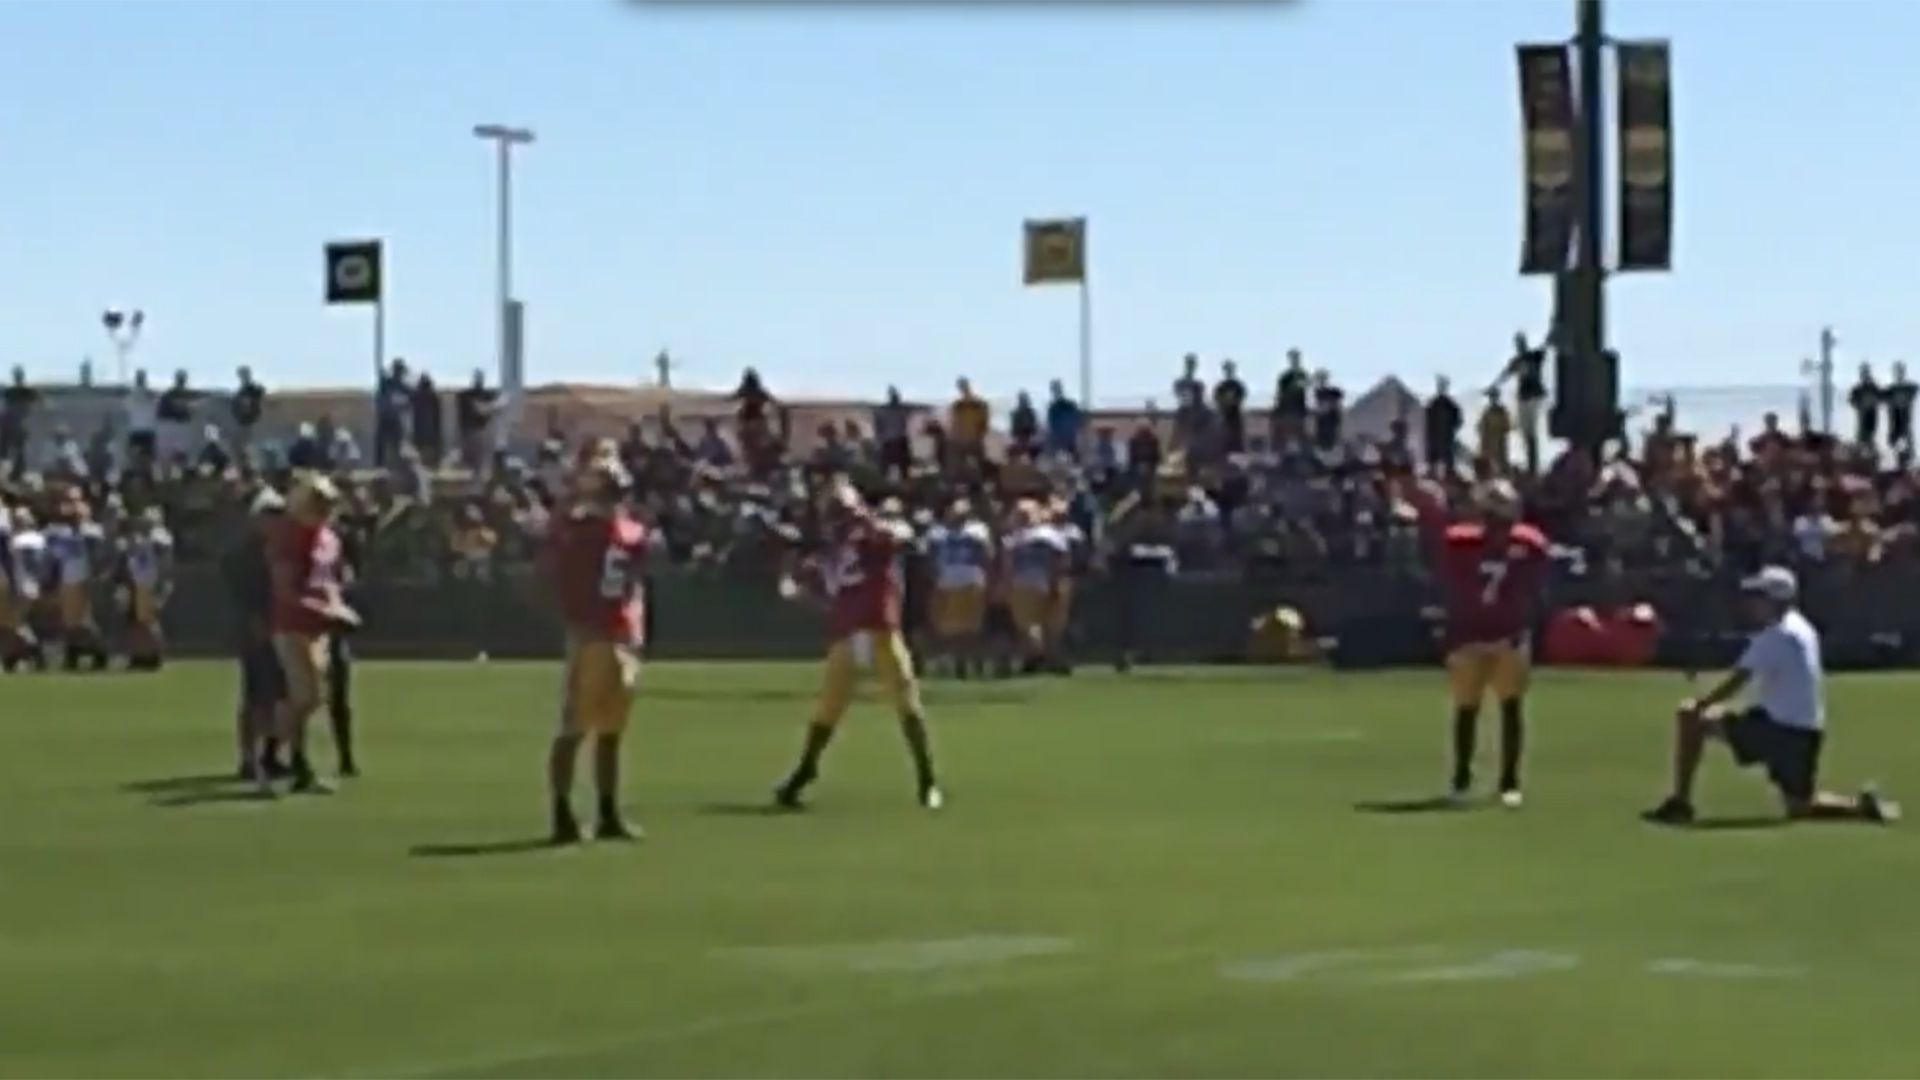 Aaron Rodgers launches football into net from midfield